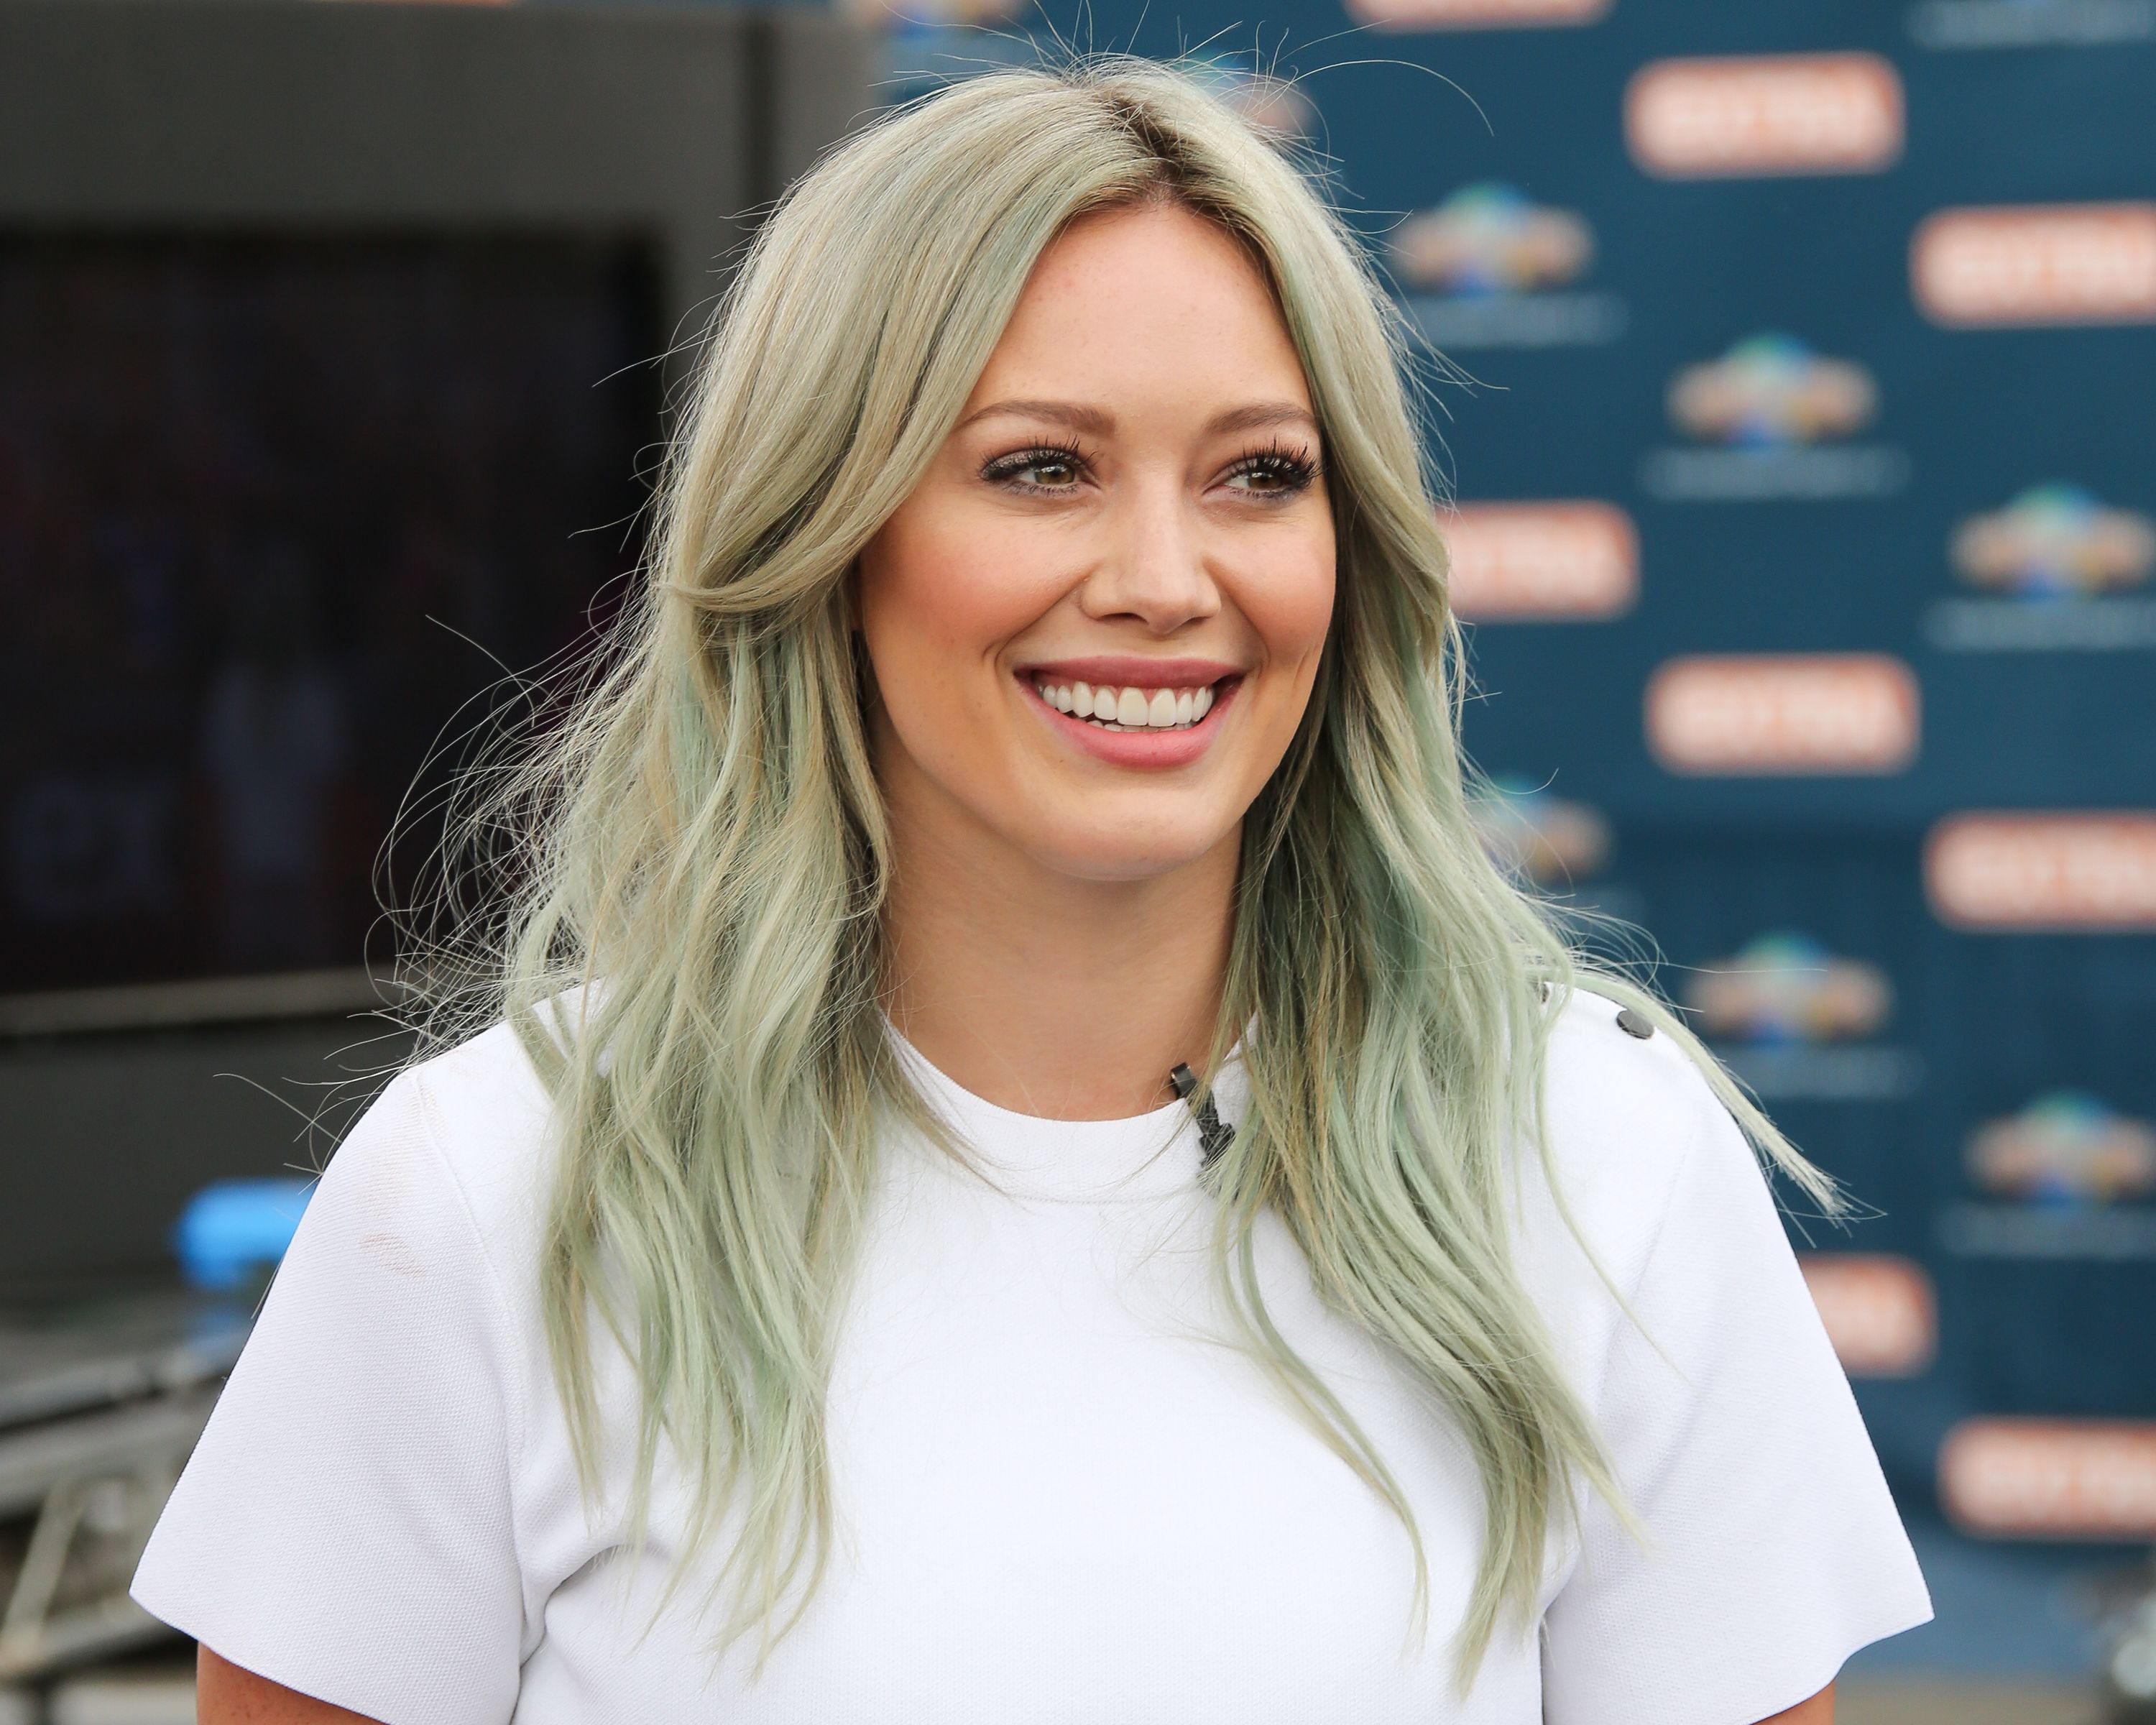 Hilary Duff Hilary Duff new pictures